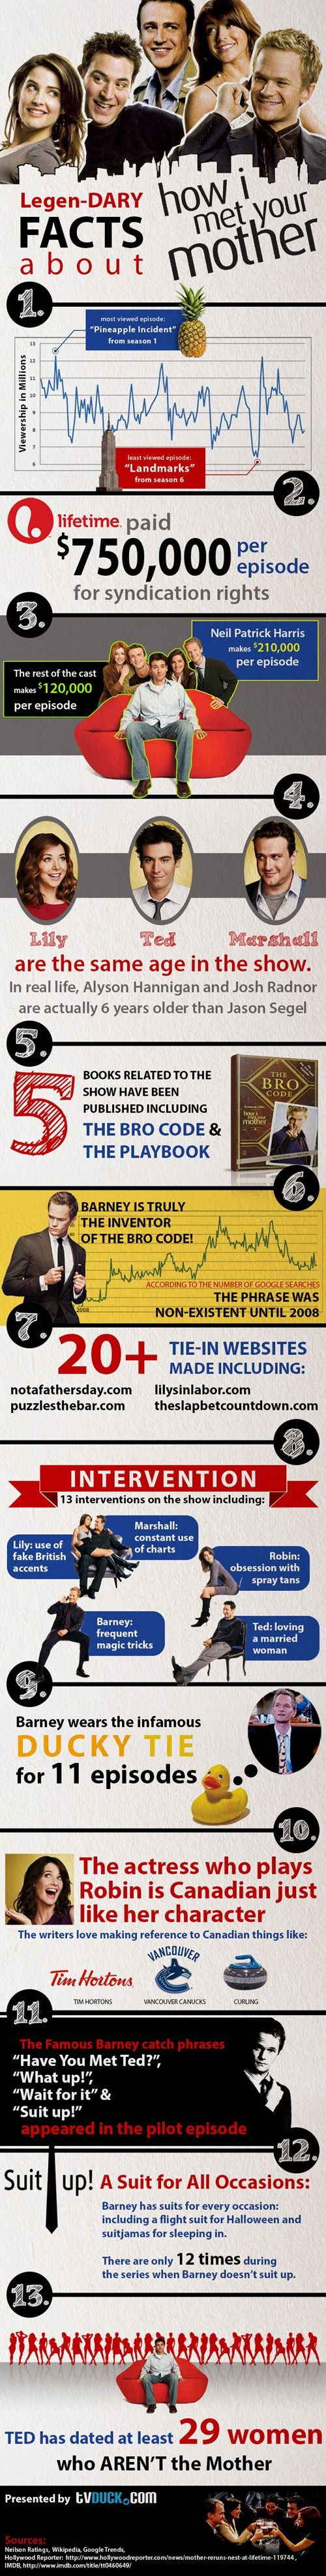 how i met your mother legendary TV celeb Neil Patrick Harris infographic - 6954587904